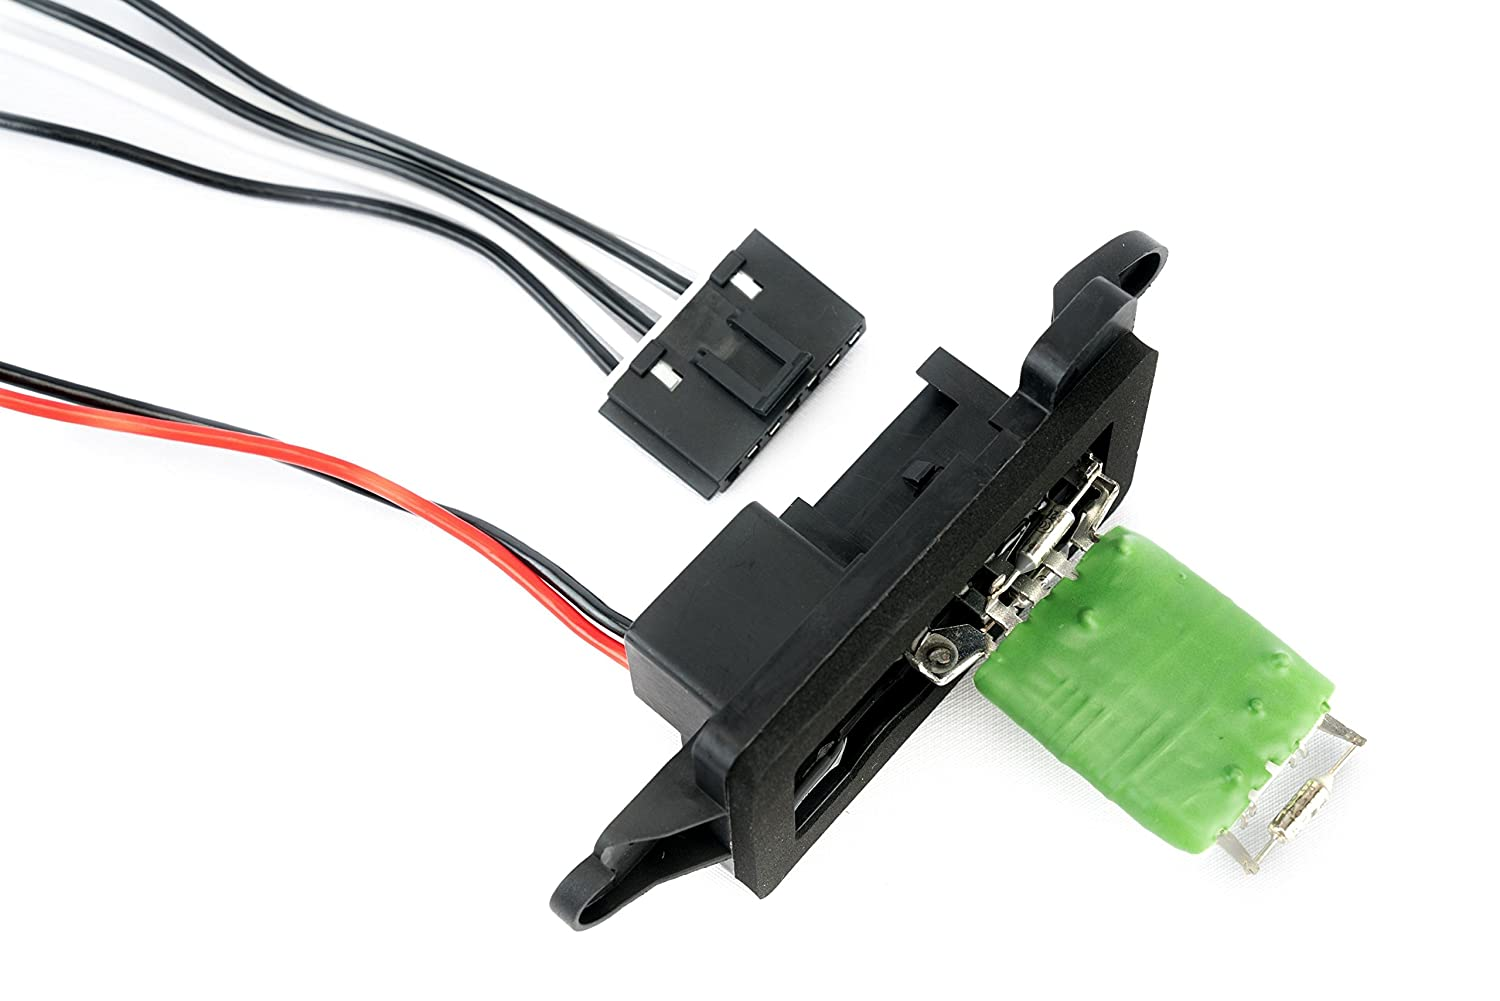 AC Blower Motor Resistor Kit With Harness - Replaces # 89019088, 973-405, 15-81086, 22807123 - Chevy Silverado, Tahoe, Suburban, Avalanche, GMC Sierra, Yukon, Cadillac Escalade - HVAC Fan Blower Motor Image